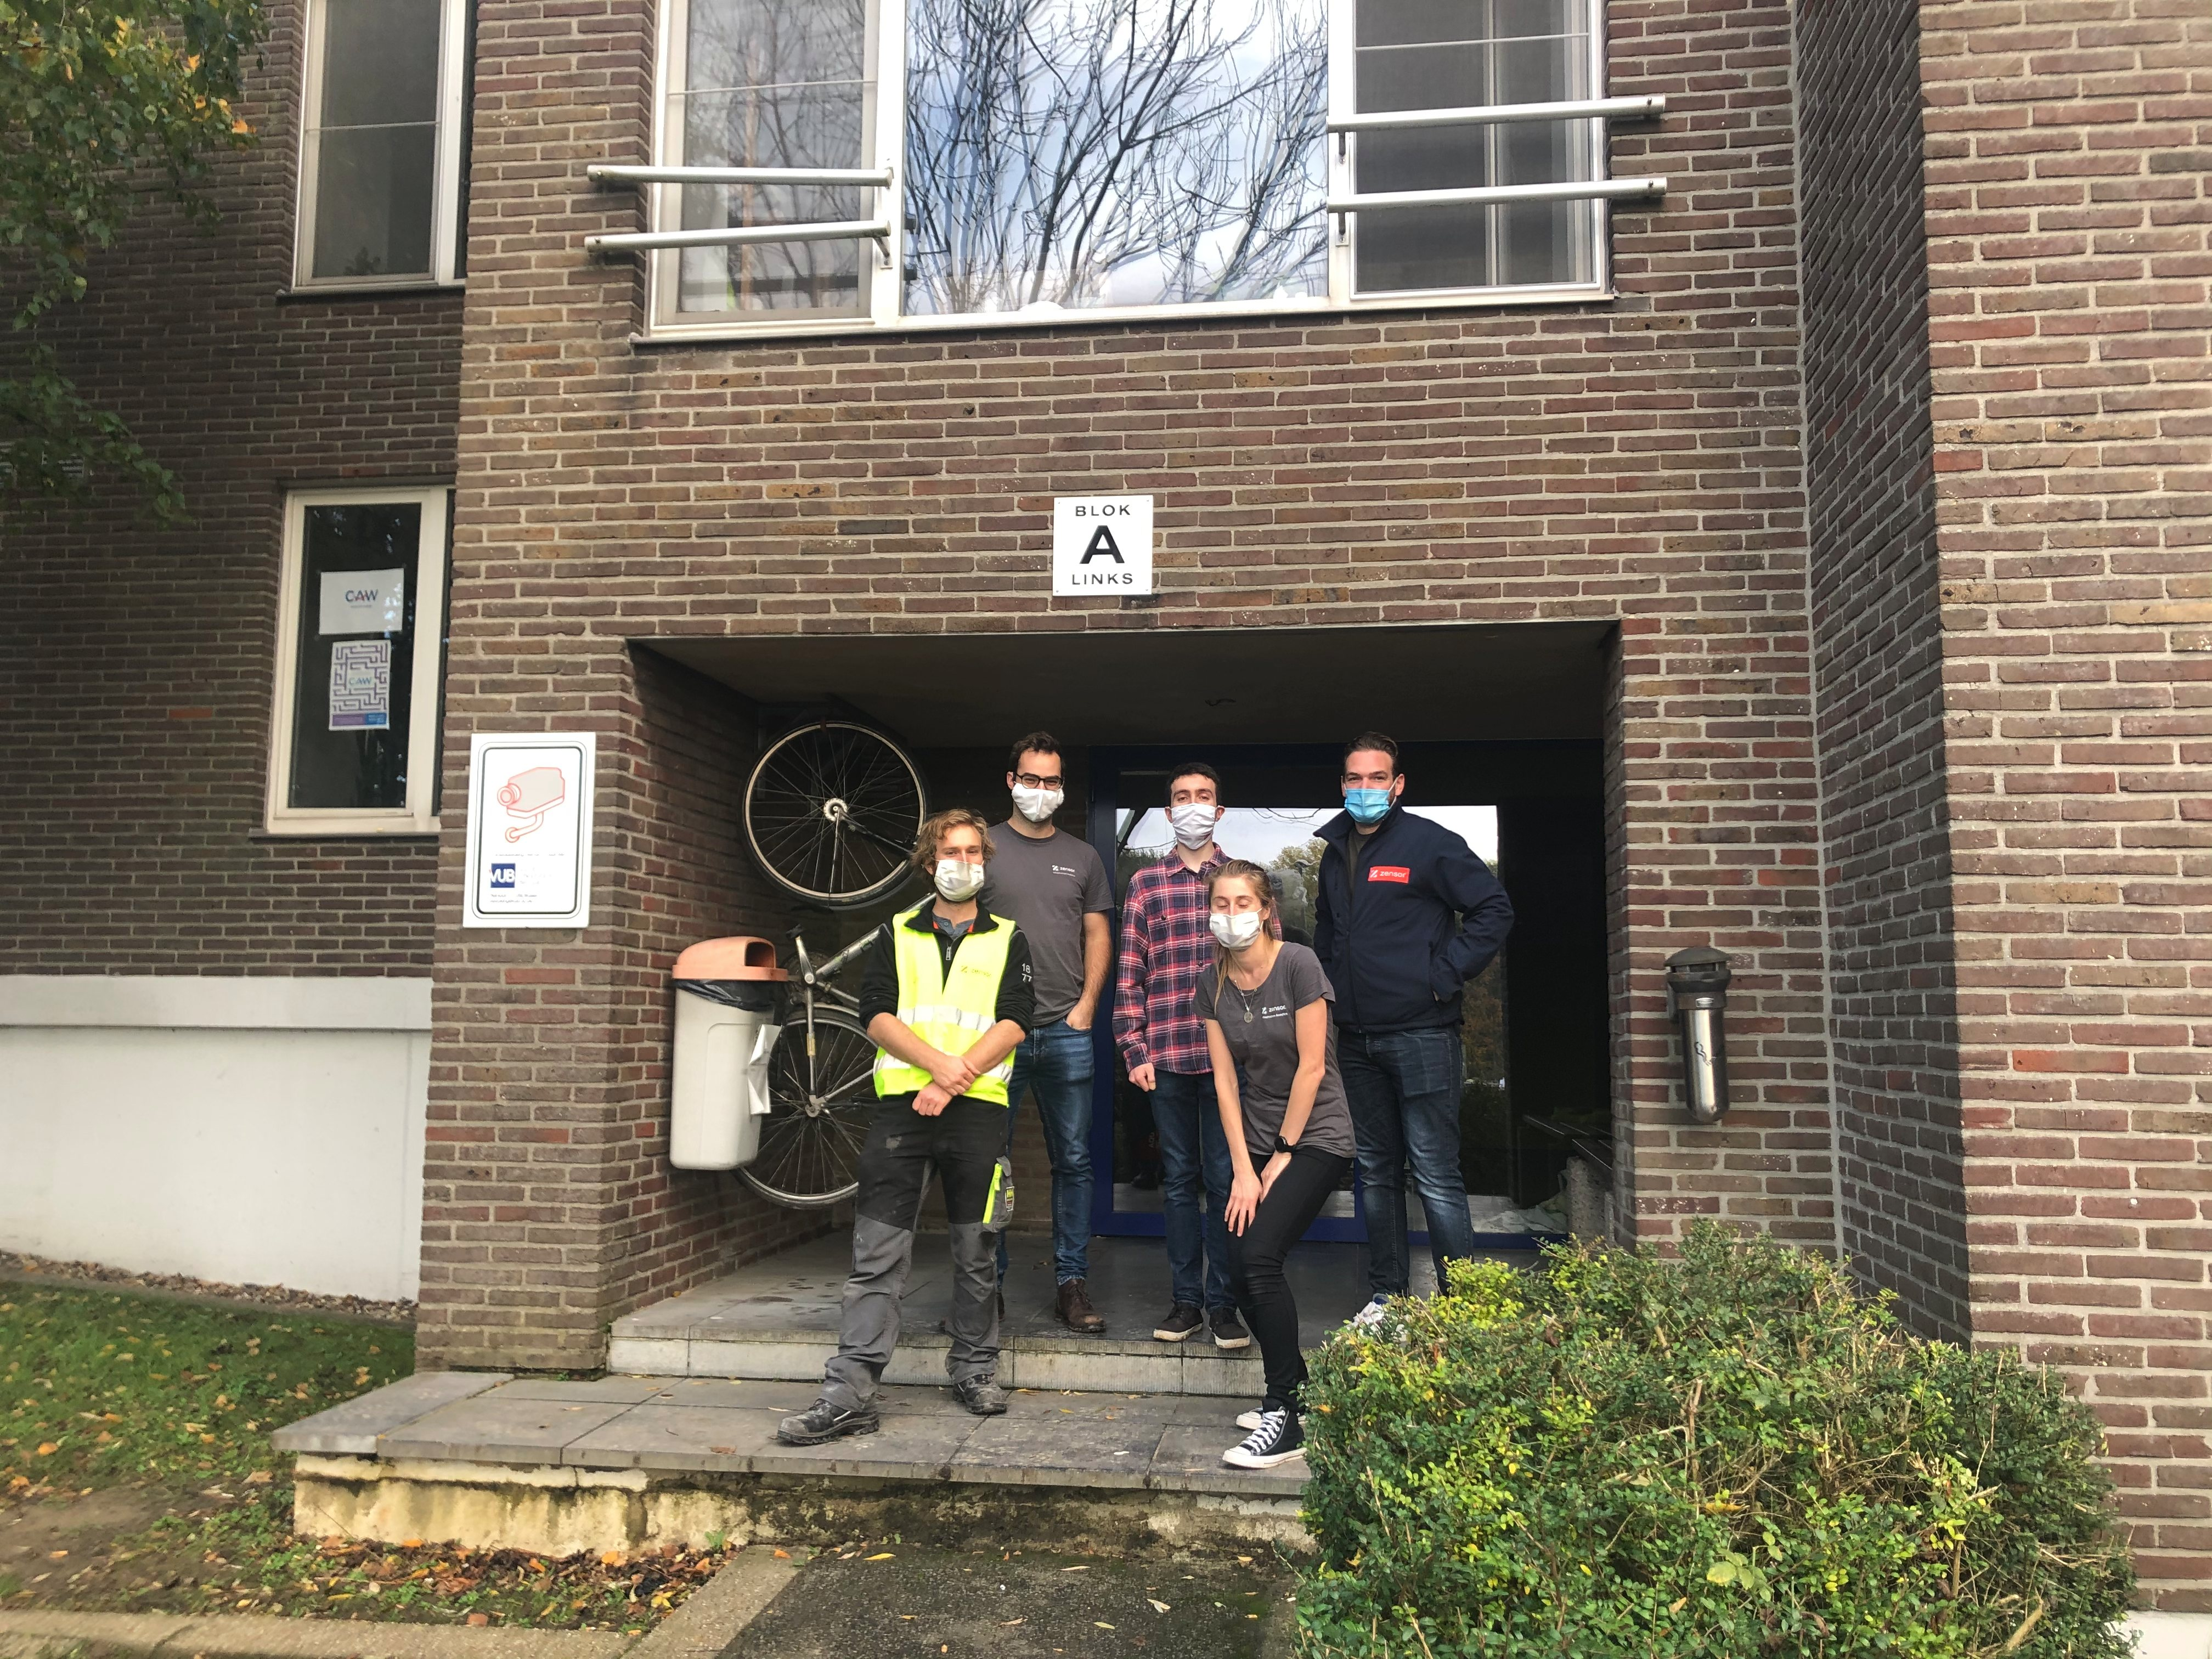 VUB students in front of Jette's campus dormitories